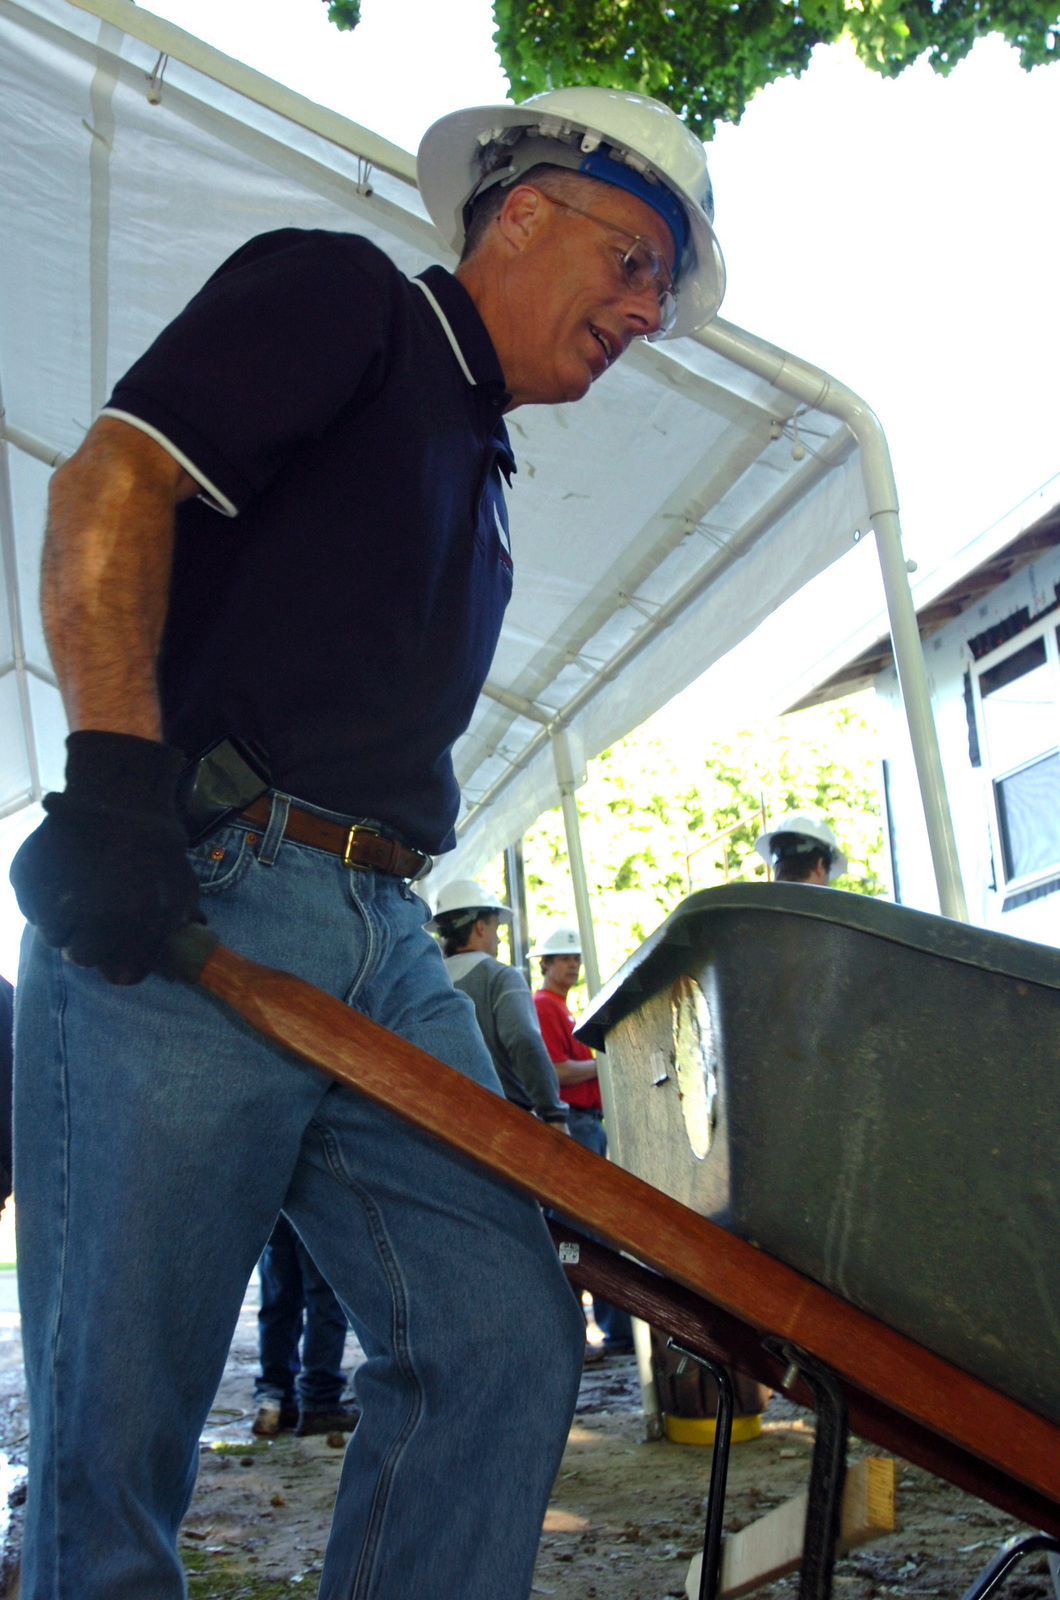 The Adjutant General (AG) of the Michigan Army National Guard (MIARNG) Major General (MGEN) Tomas G. Cutler, helps the State of Michigan employees with a Habitat for Humanity housing project in Lansing, Michigan (MI). (A3596)